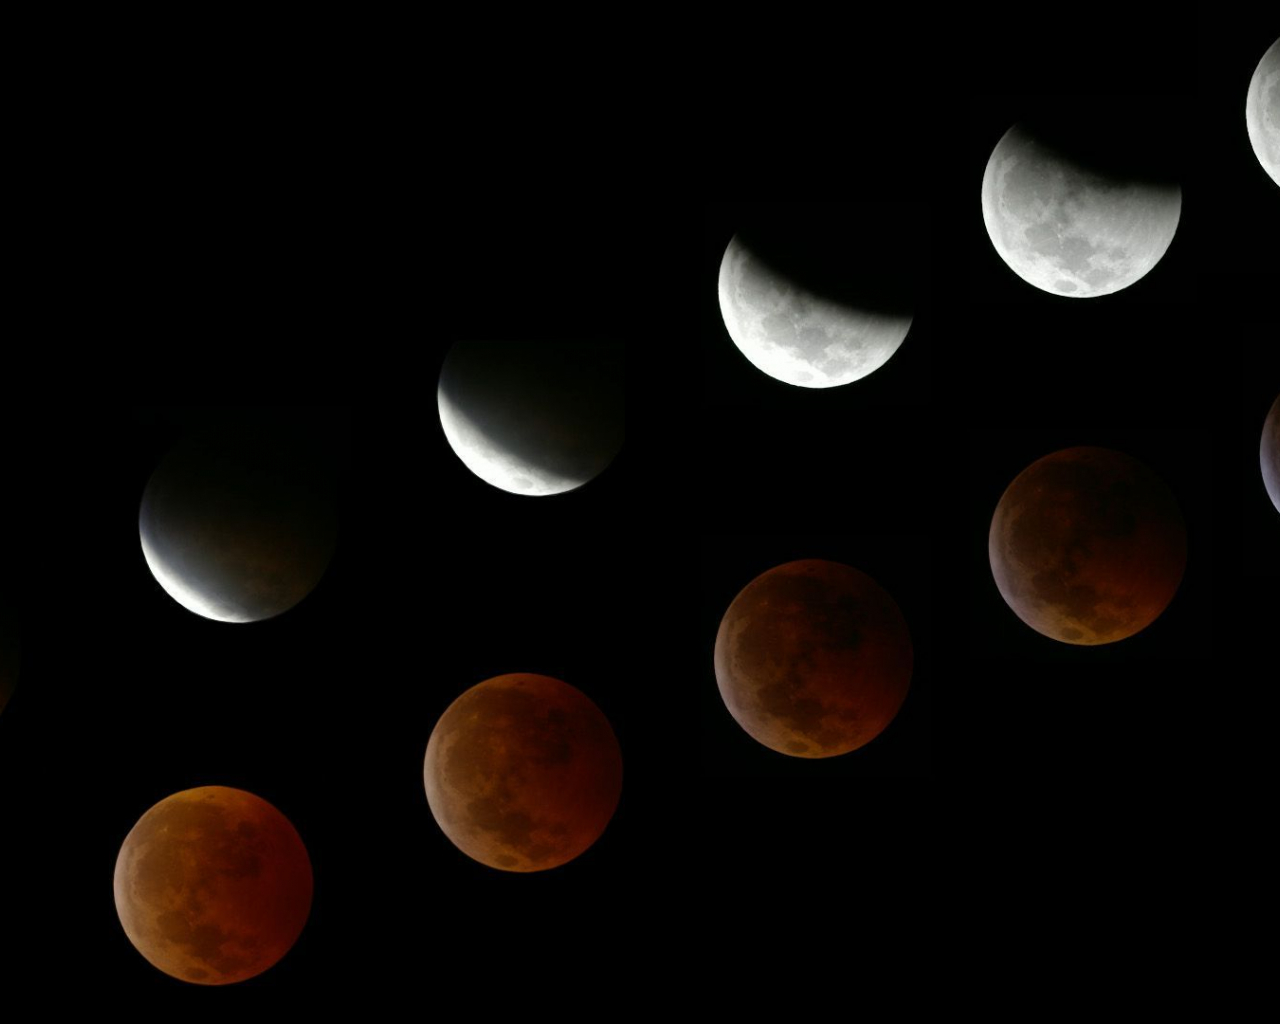 Free Download Phases Of The Moon Hd Wallpaper 1920x1080 1920x1080